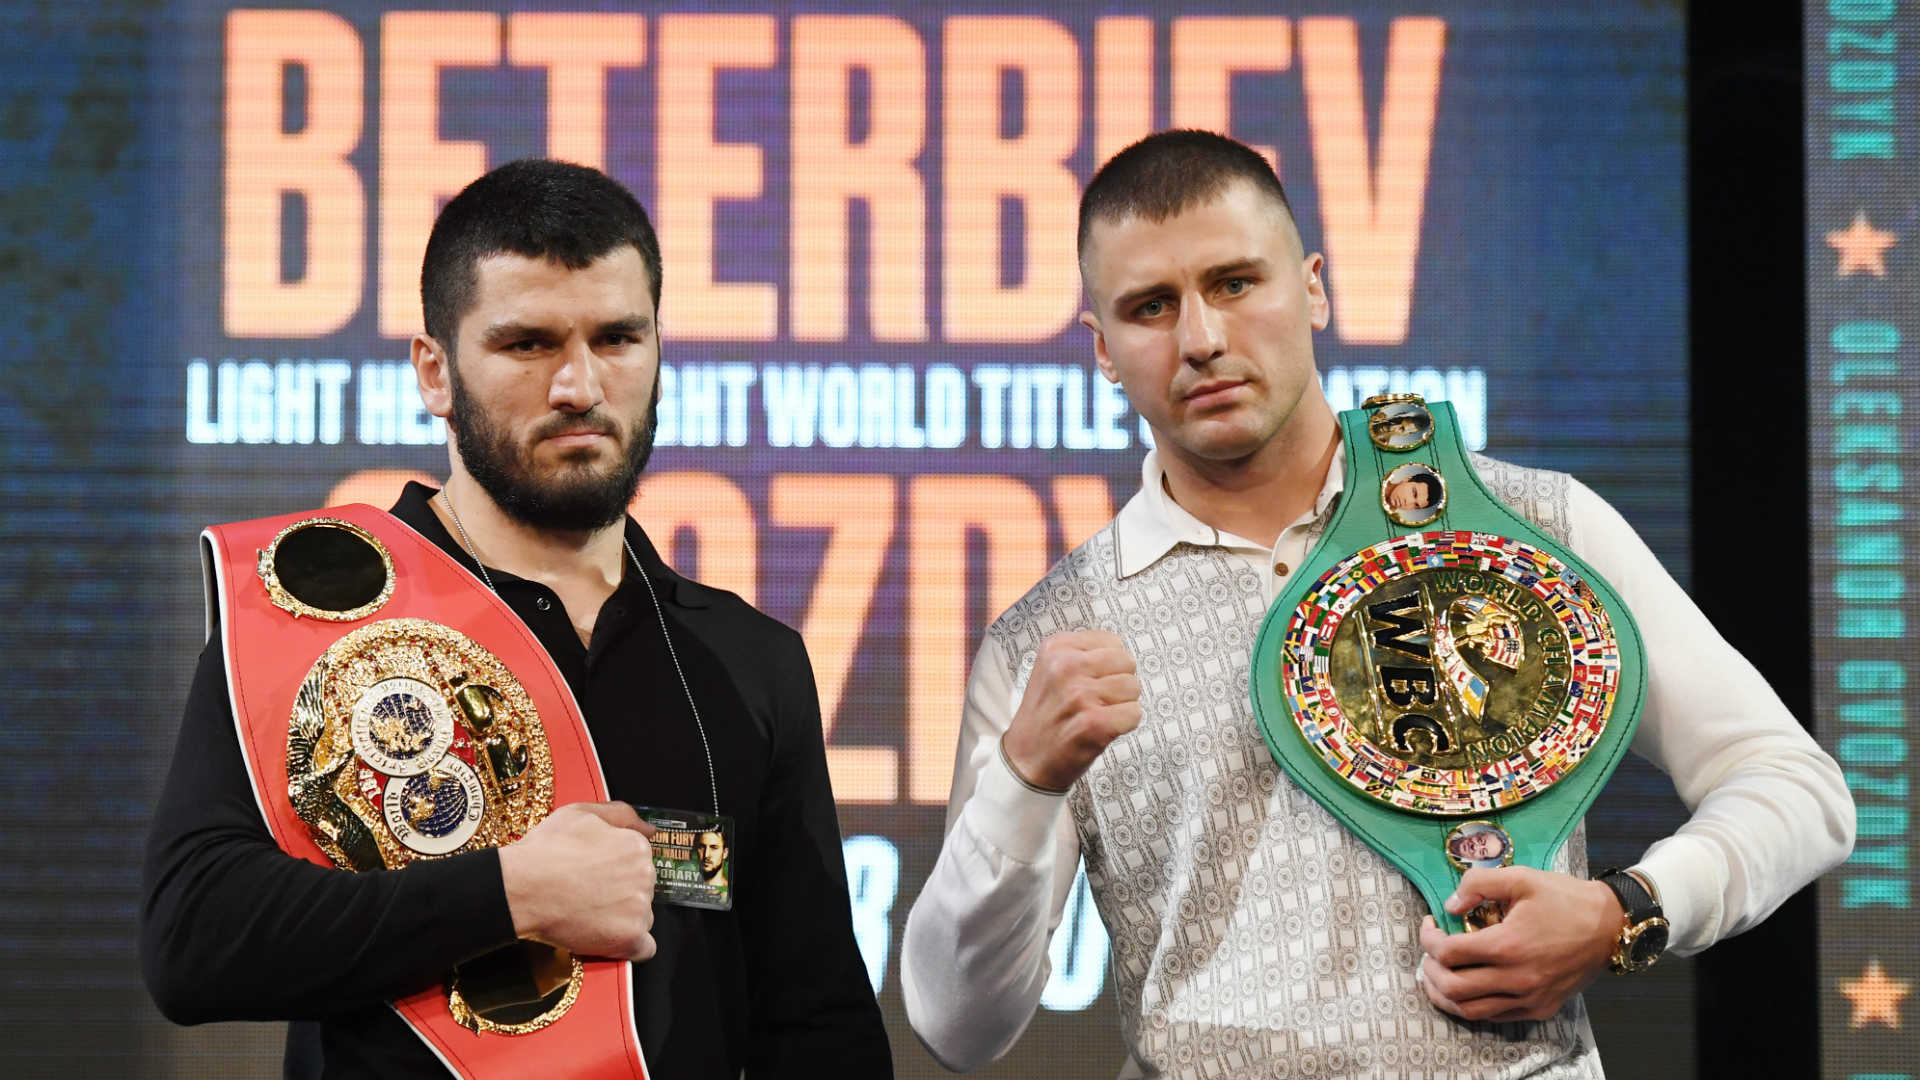 Gvozdyk released from hospital after TKO loss to Beterbiev